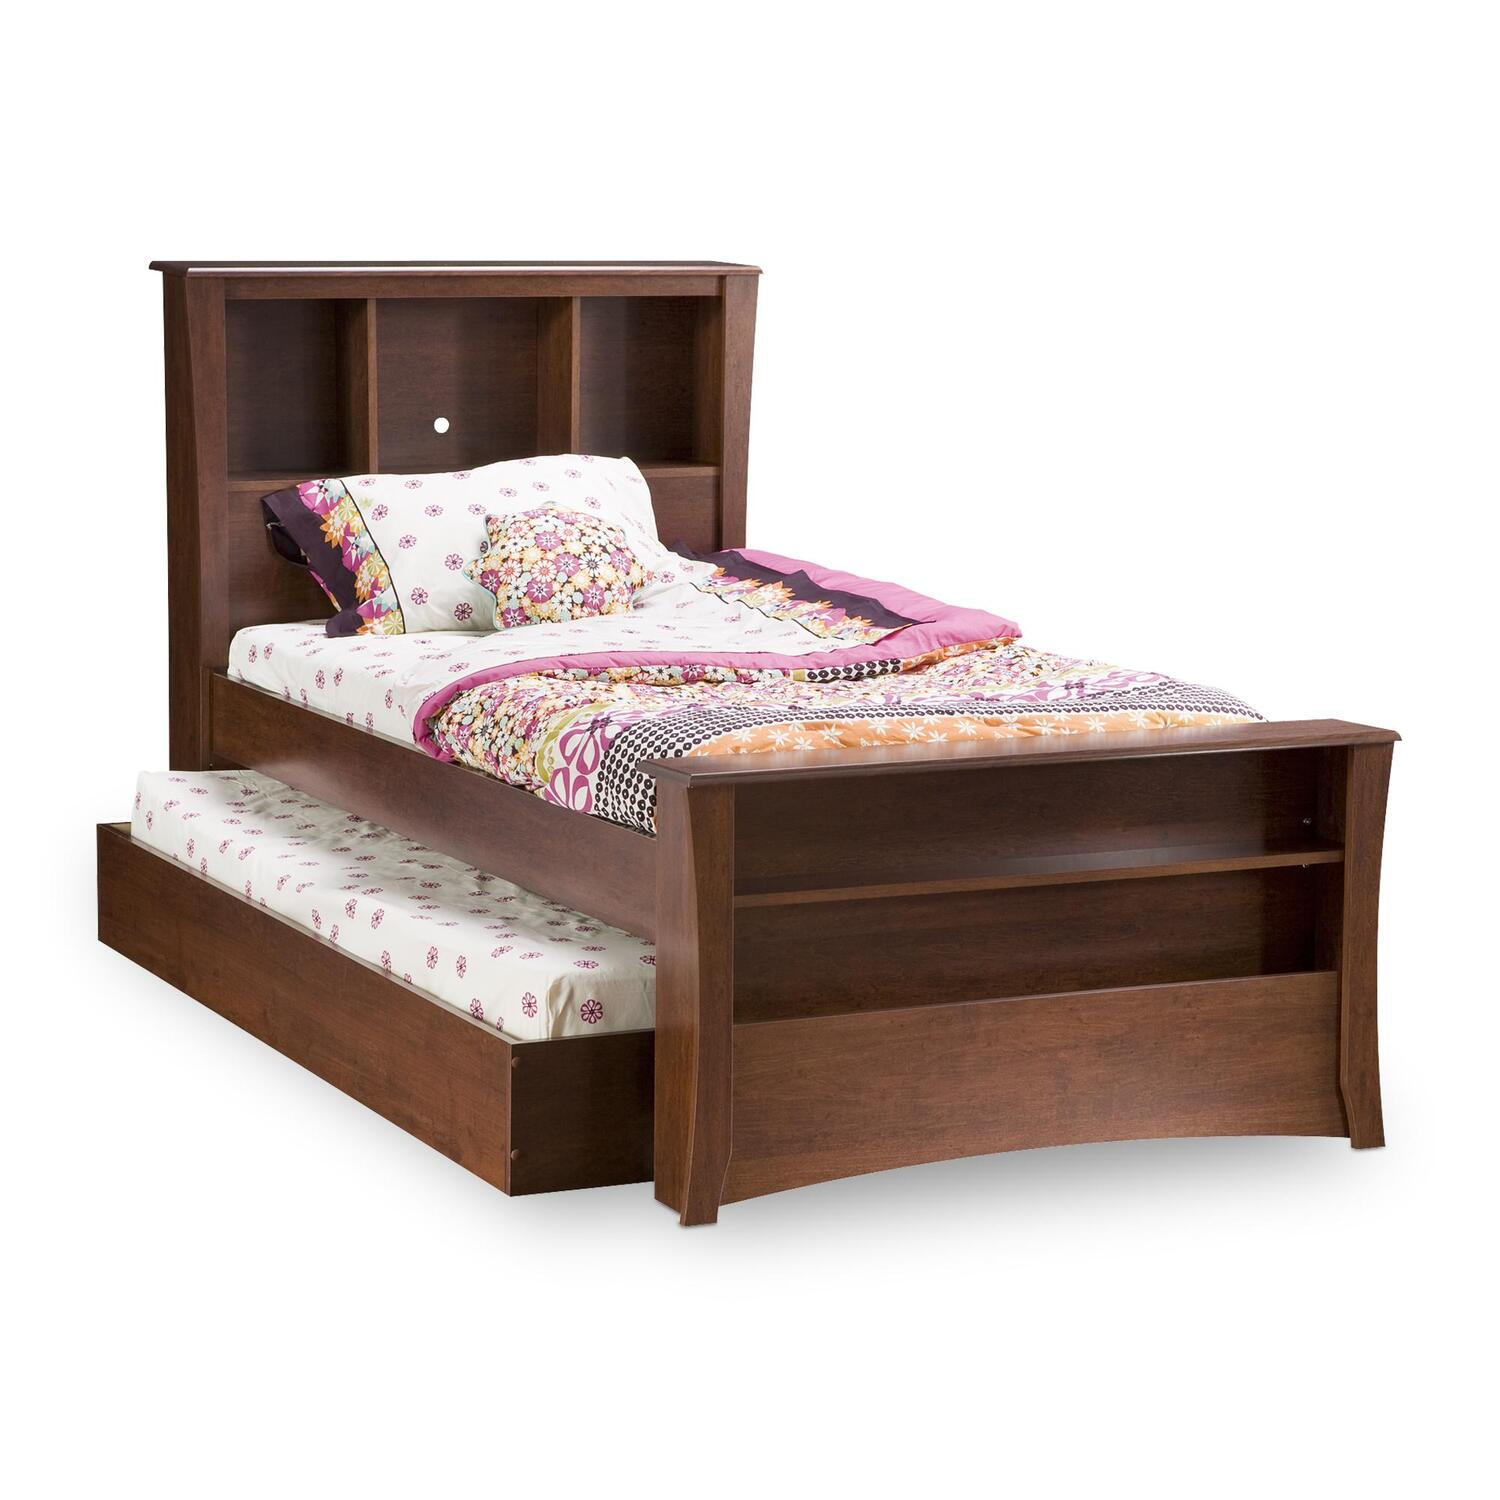 Twin size bed frame with storage for Double bed with storage and mattress